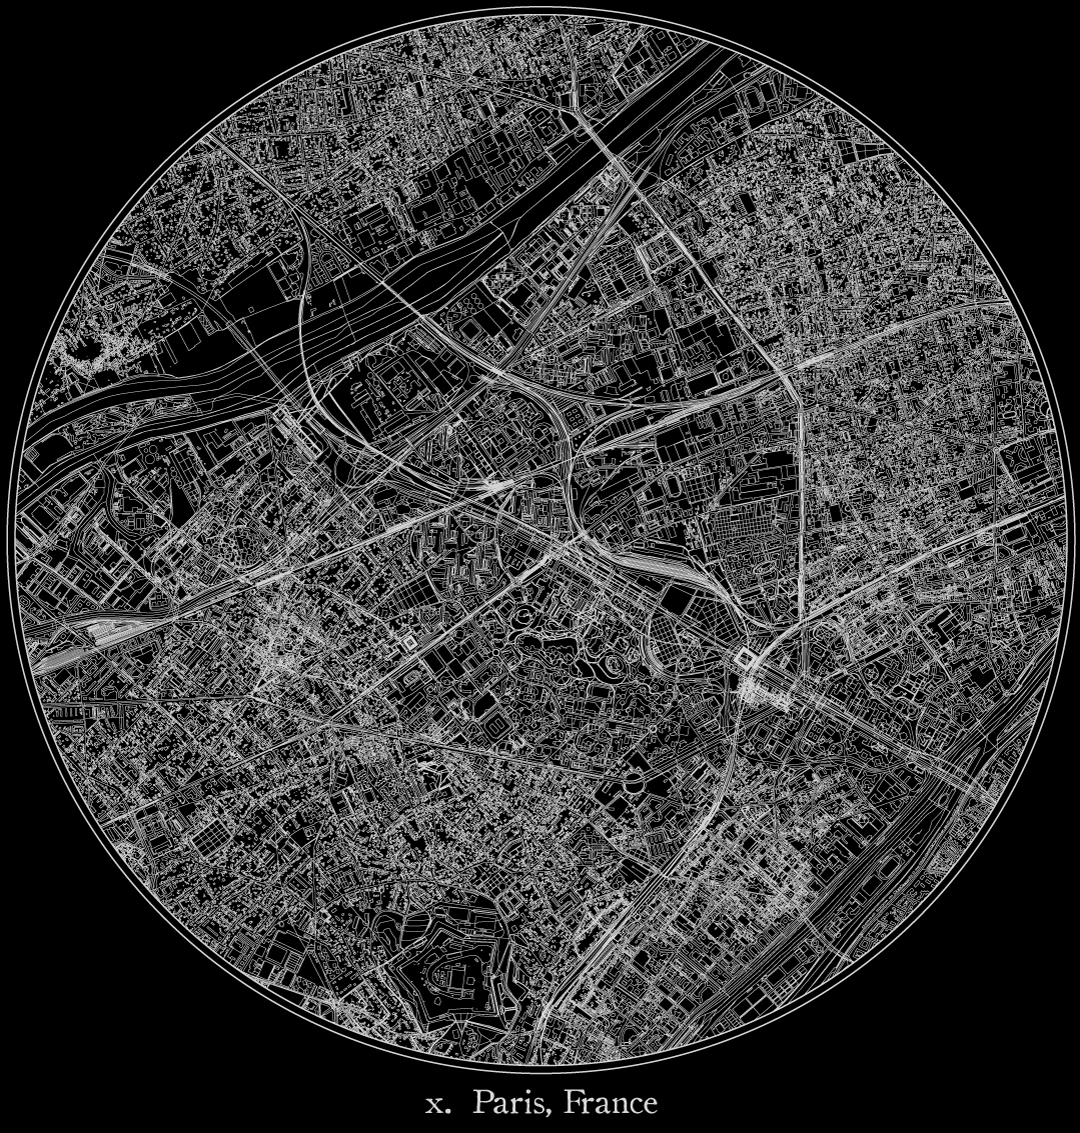 City map illustration of Paris created using Maperitive, OpenStreetMap and Adobe Illustrator.